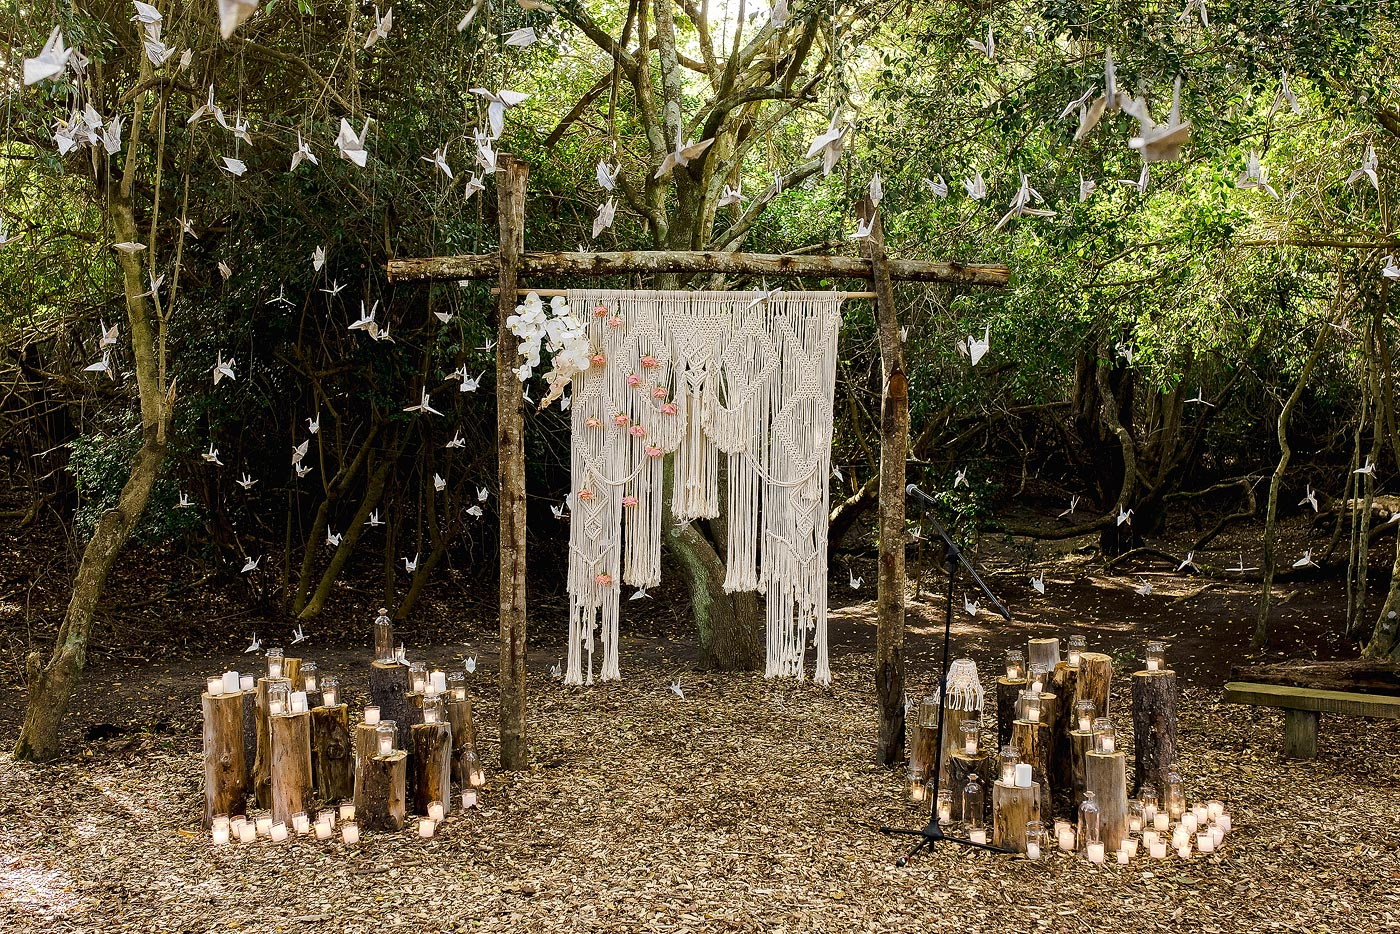 Forest Wedding Decor and Altar with decorations and paper origami cranes.